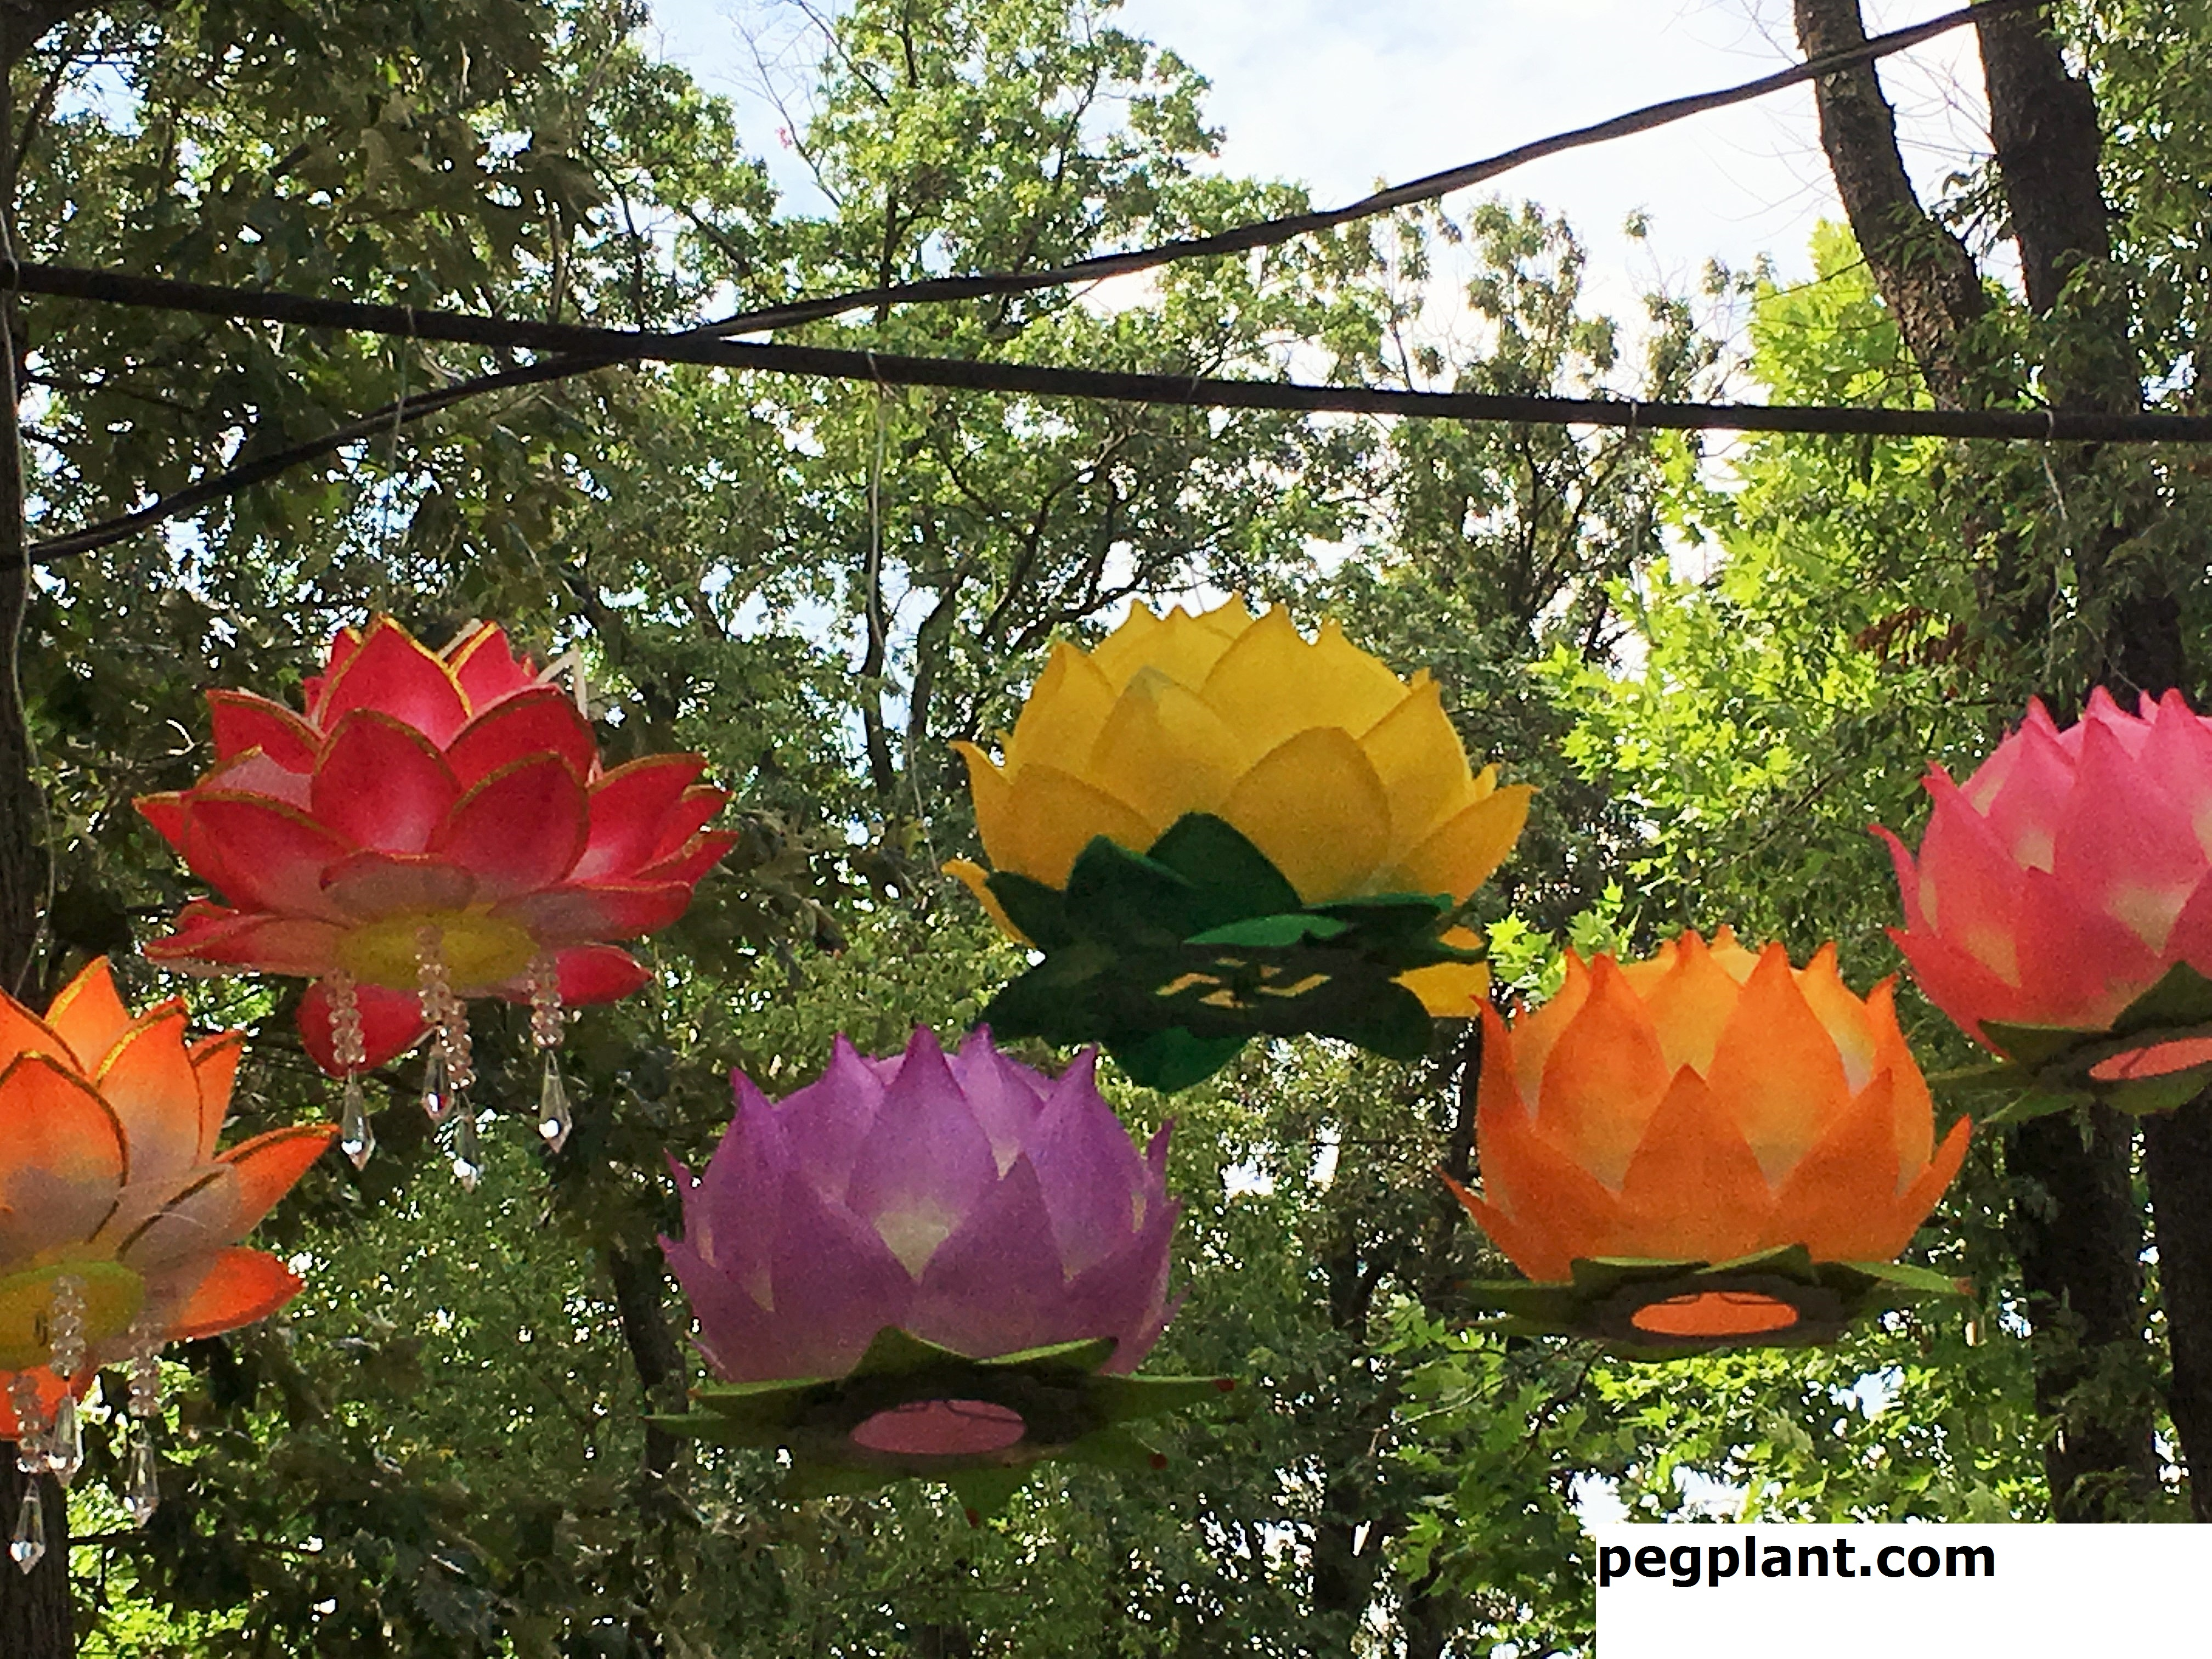 Amazing lotus flowers and water lilies at kenilworth park - Kenilworth park and aquatic gardens ...